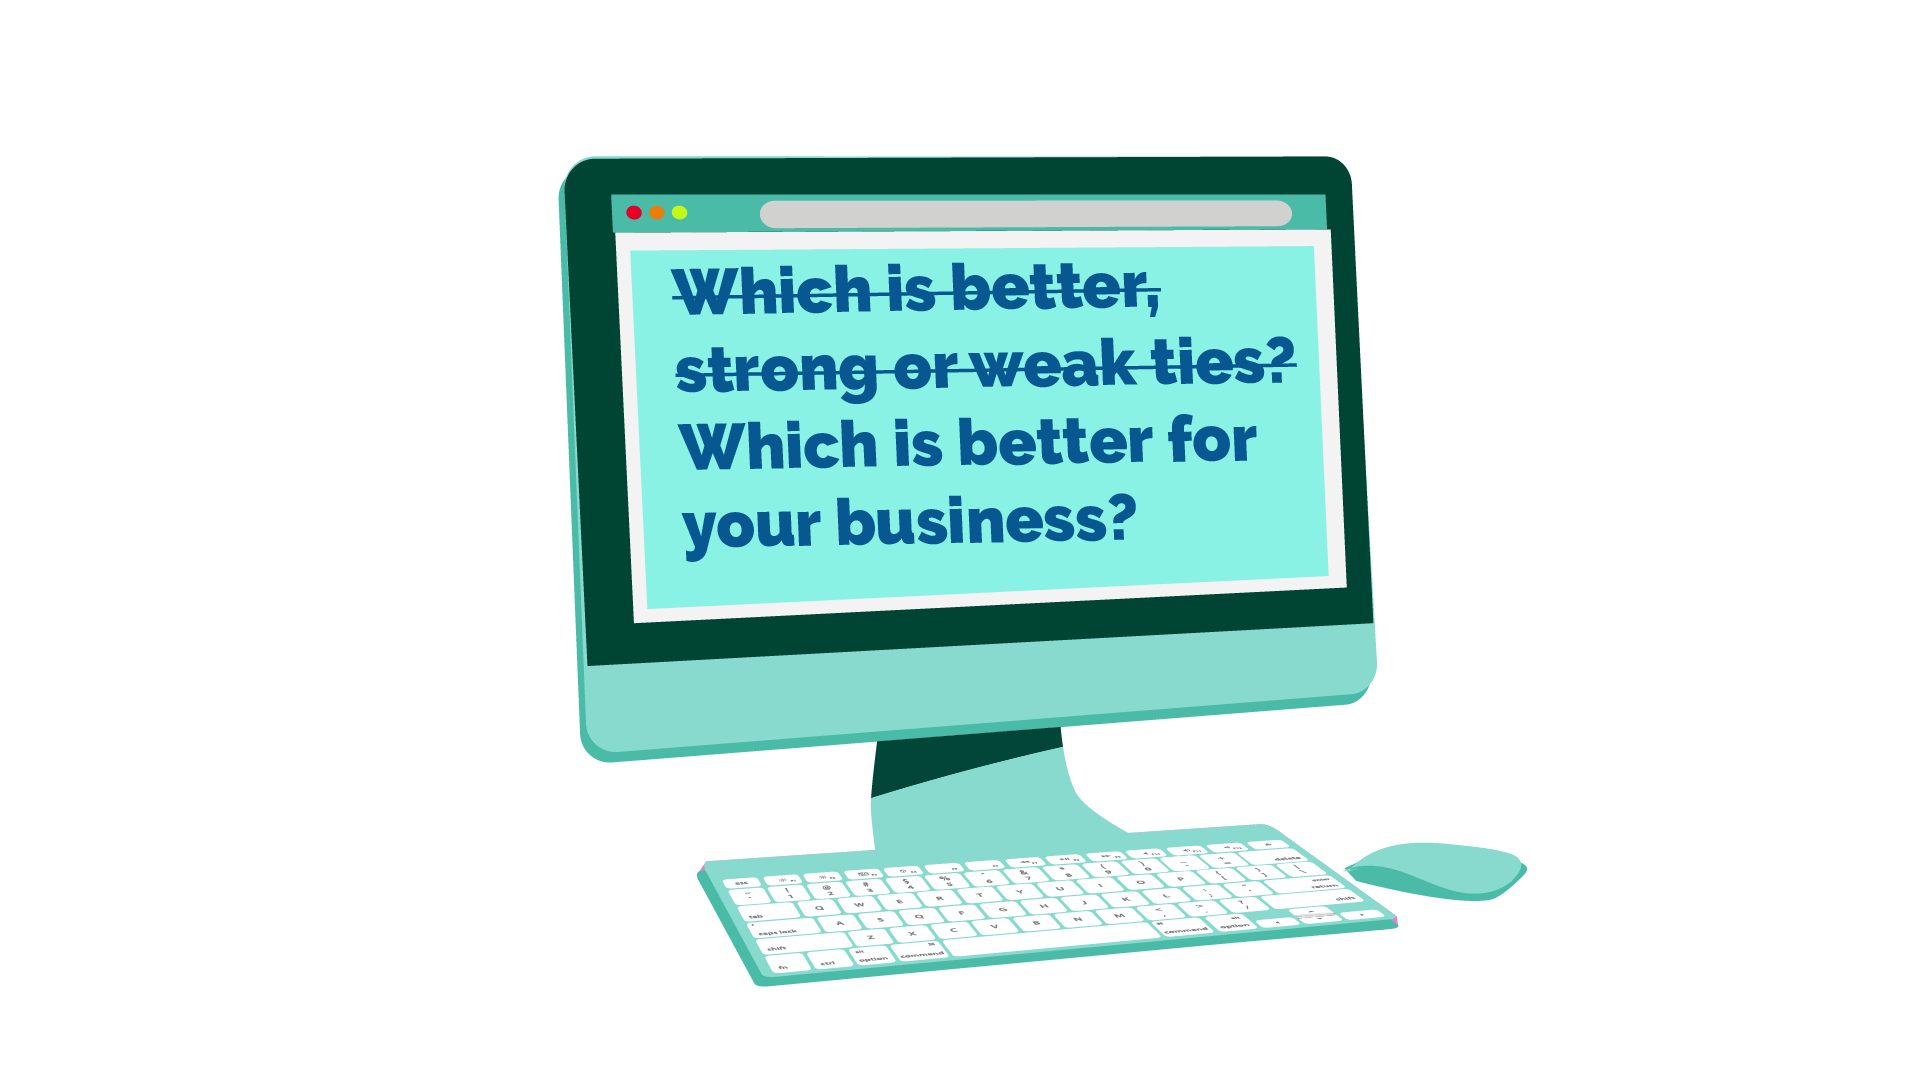 Which is better for your business?